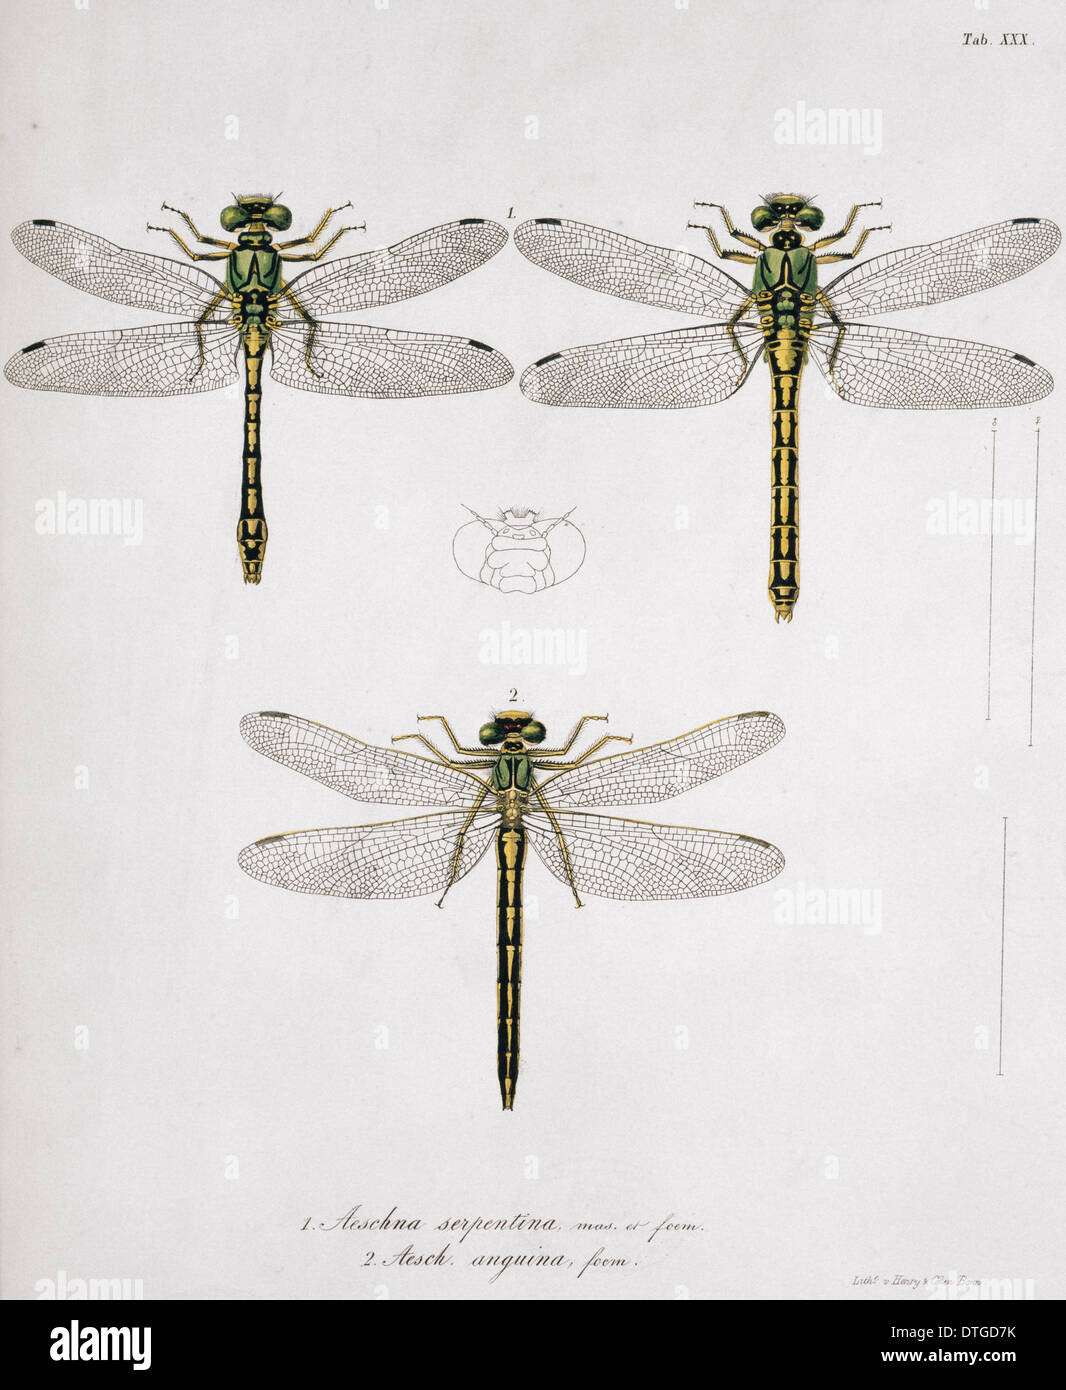 Plate 30 from Libellulinae Europaeae by de Charpentier - Stock Image